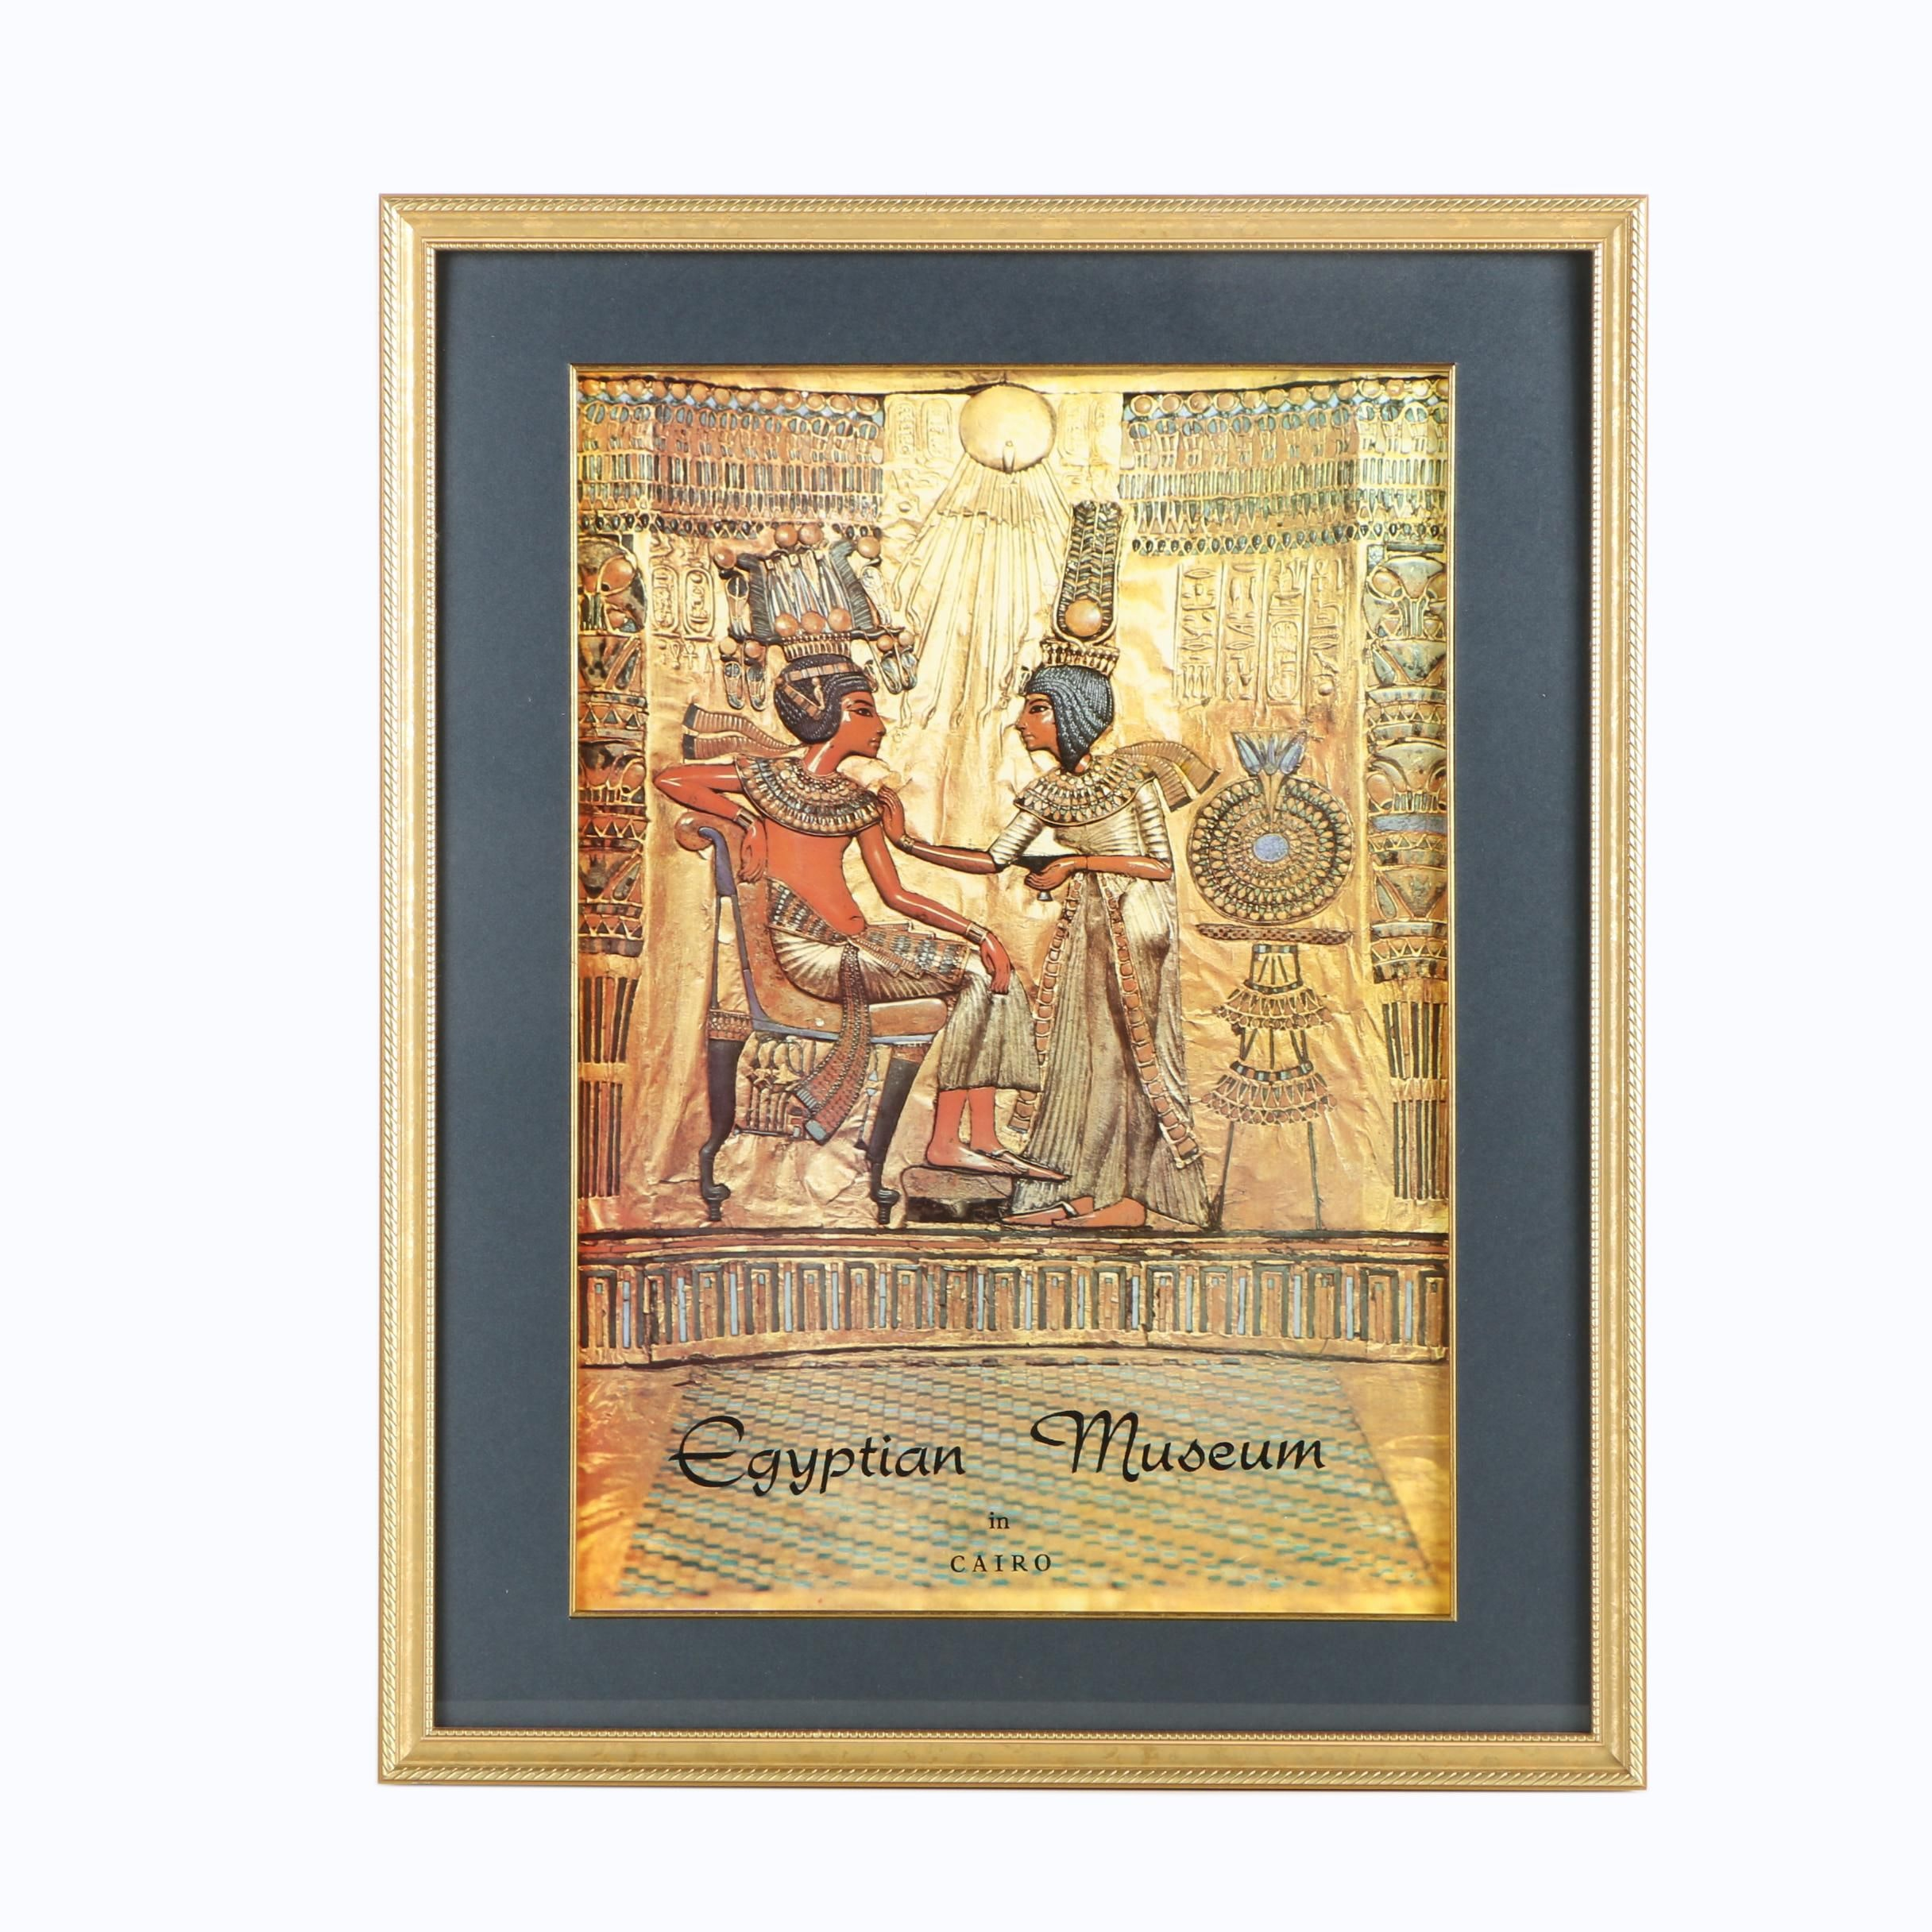 Offset Lithograph Poster for the Egyptian Museum in Cairo